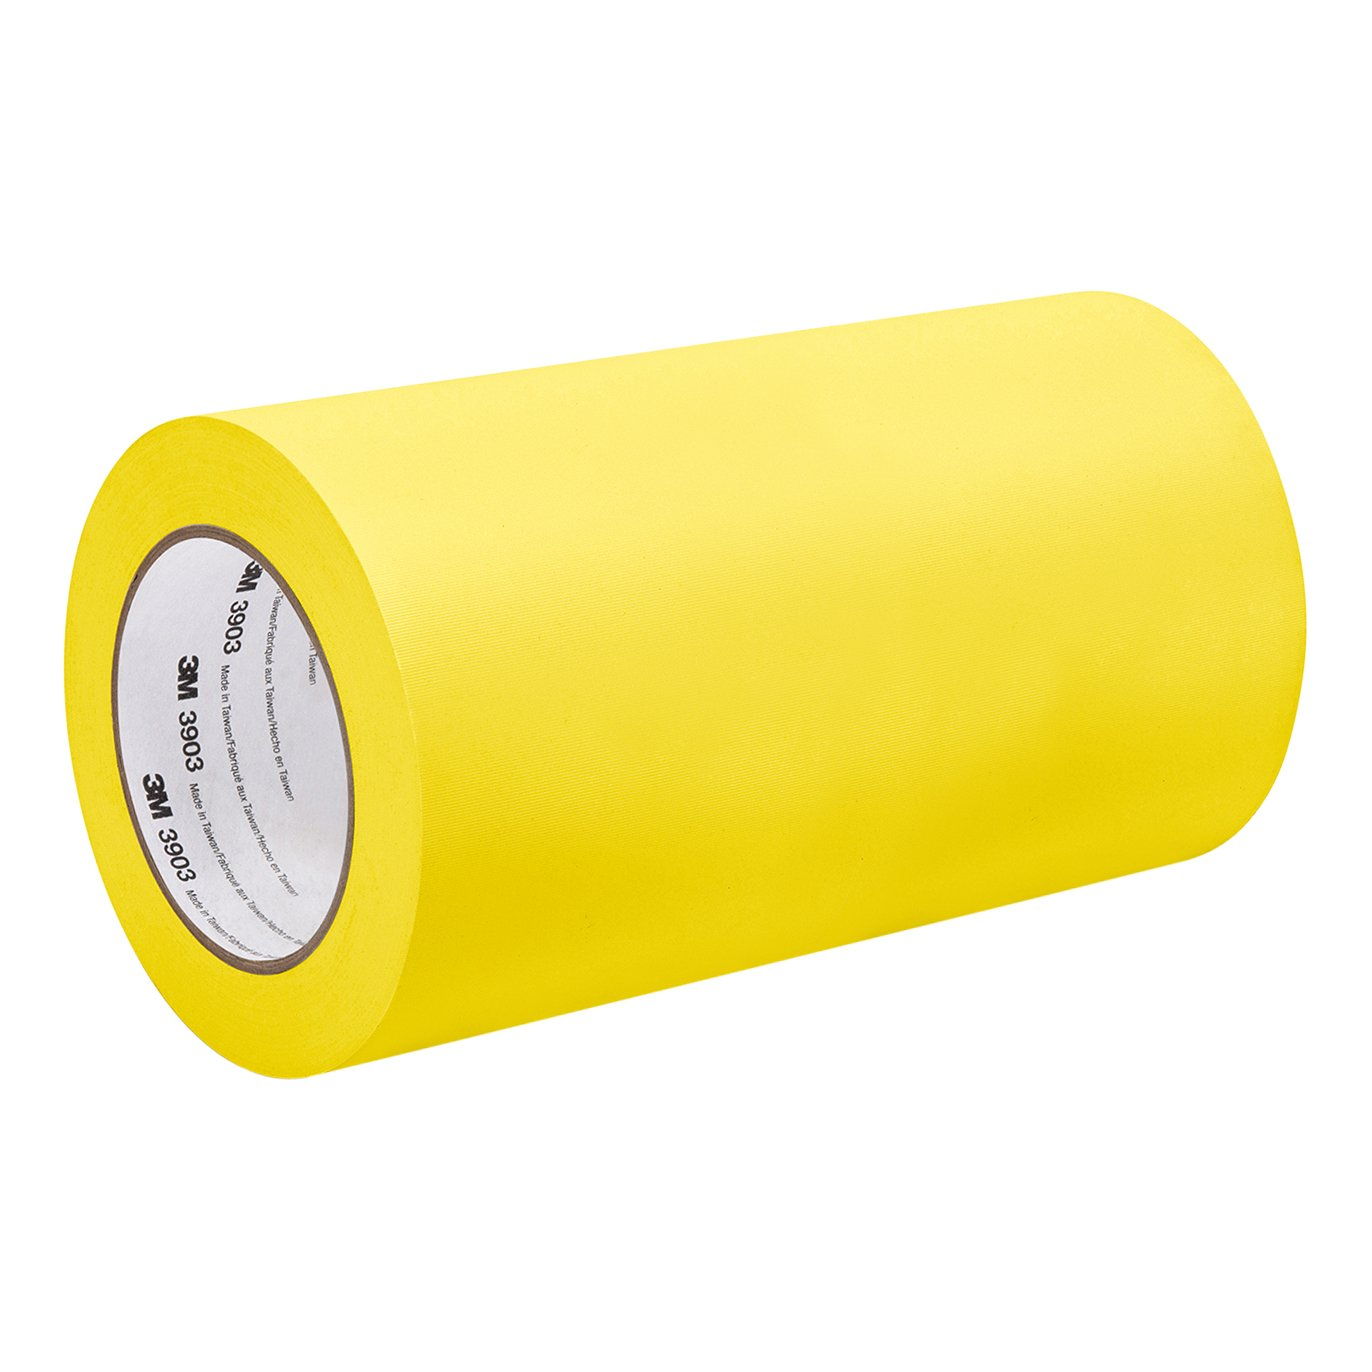 3M 3903 6'' X 50YD-Yellow Yellow Vinyl/Rubber Adhesive Duct Tape 3903, 12.6 psi Tensile Strength, 50 yd. Length, 6'' Width